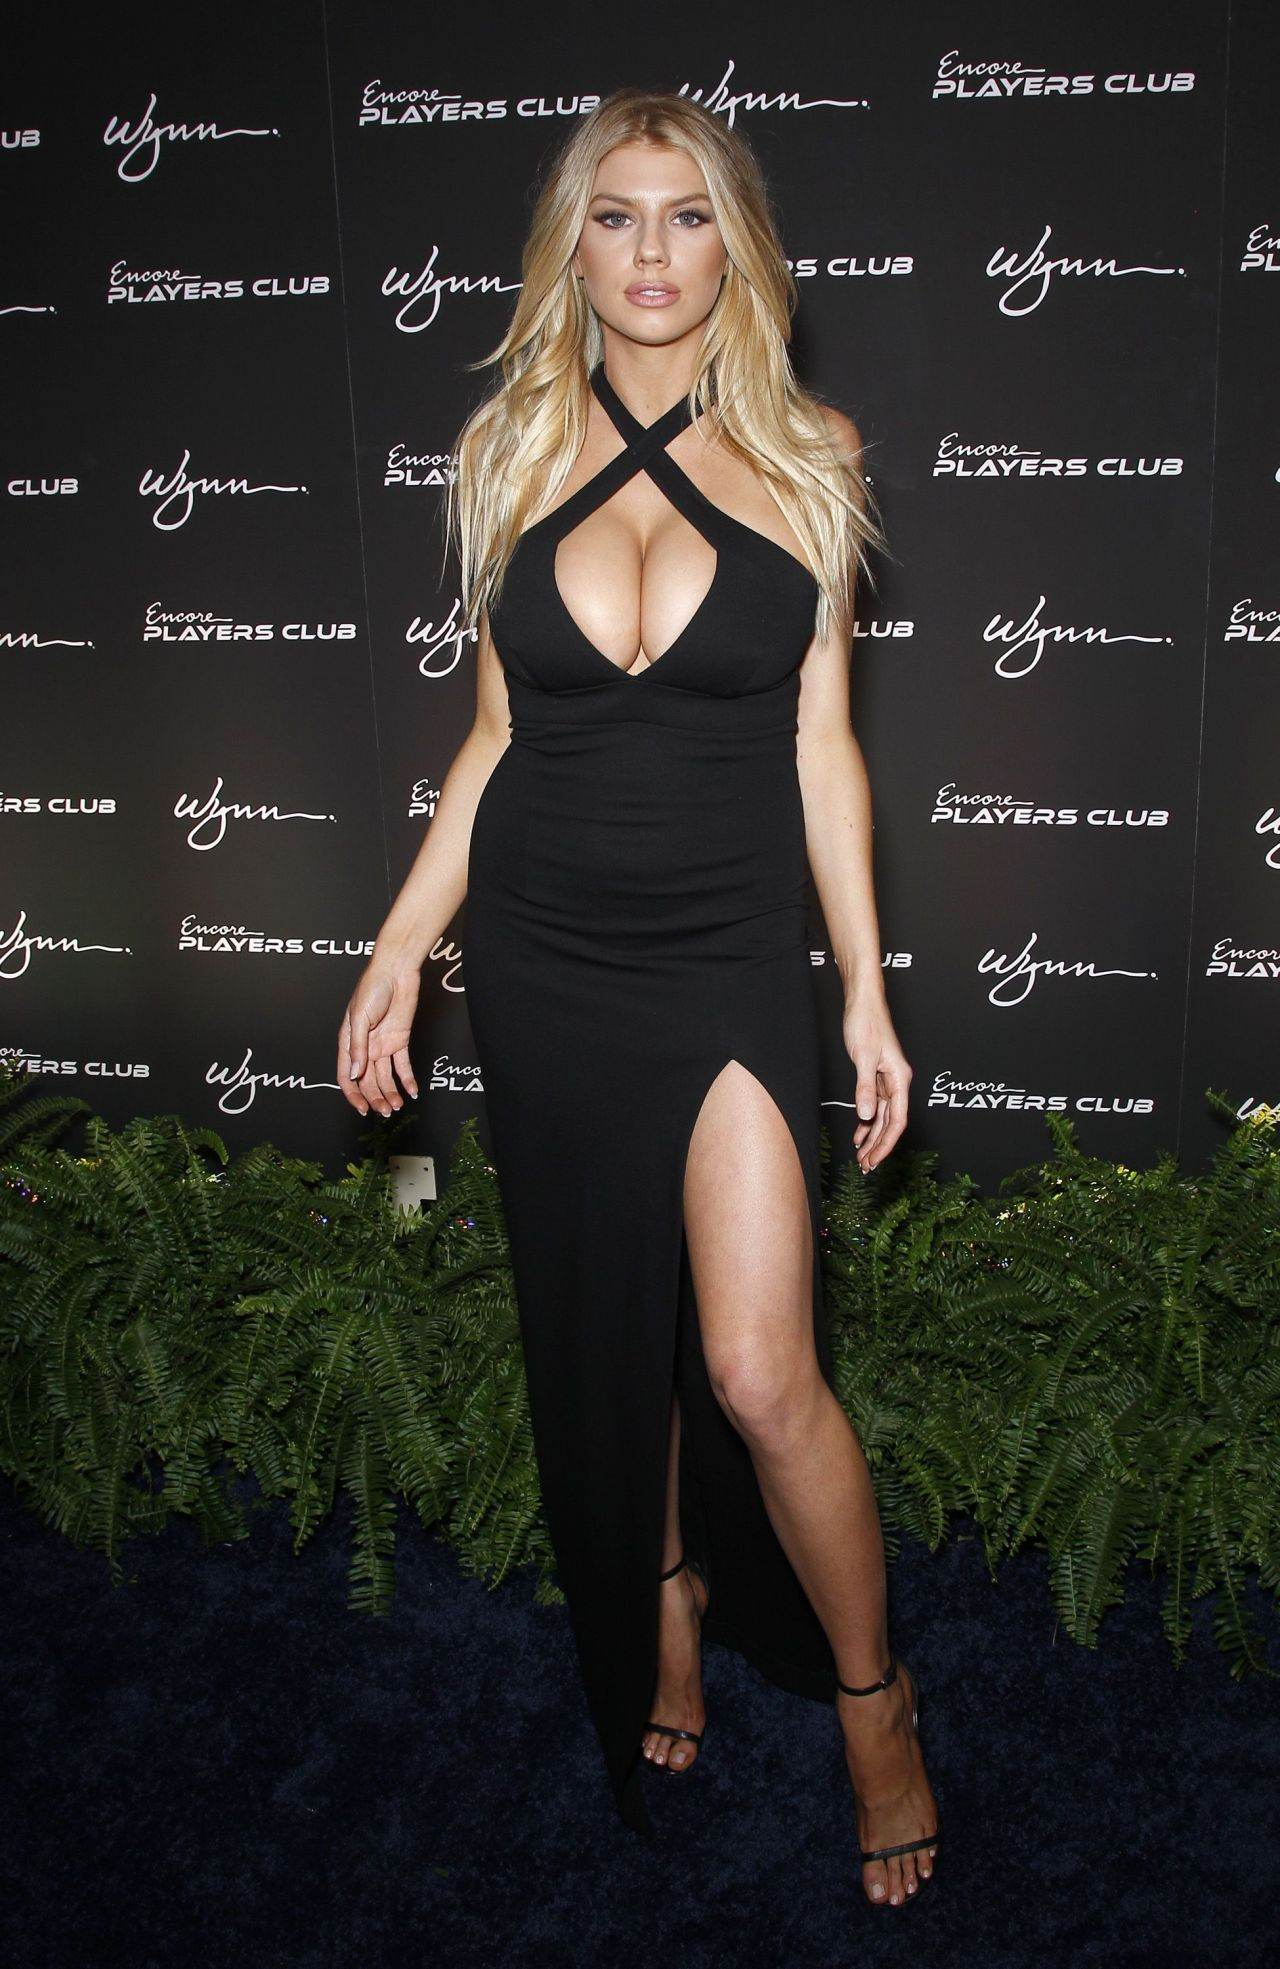 Charlotte Mckinney - Encore Players Club Grand Opening In Las Vegas, January 2016-9227